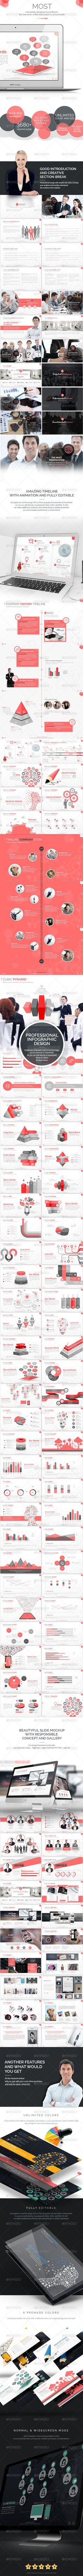 Most - The Most PowerPoint Template  #red #simple • Click here to download ! http://graphicriver.net/item/most-the-most-powerpoint-template/8197738?s_rank=1163&ref=pxcr